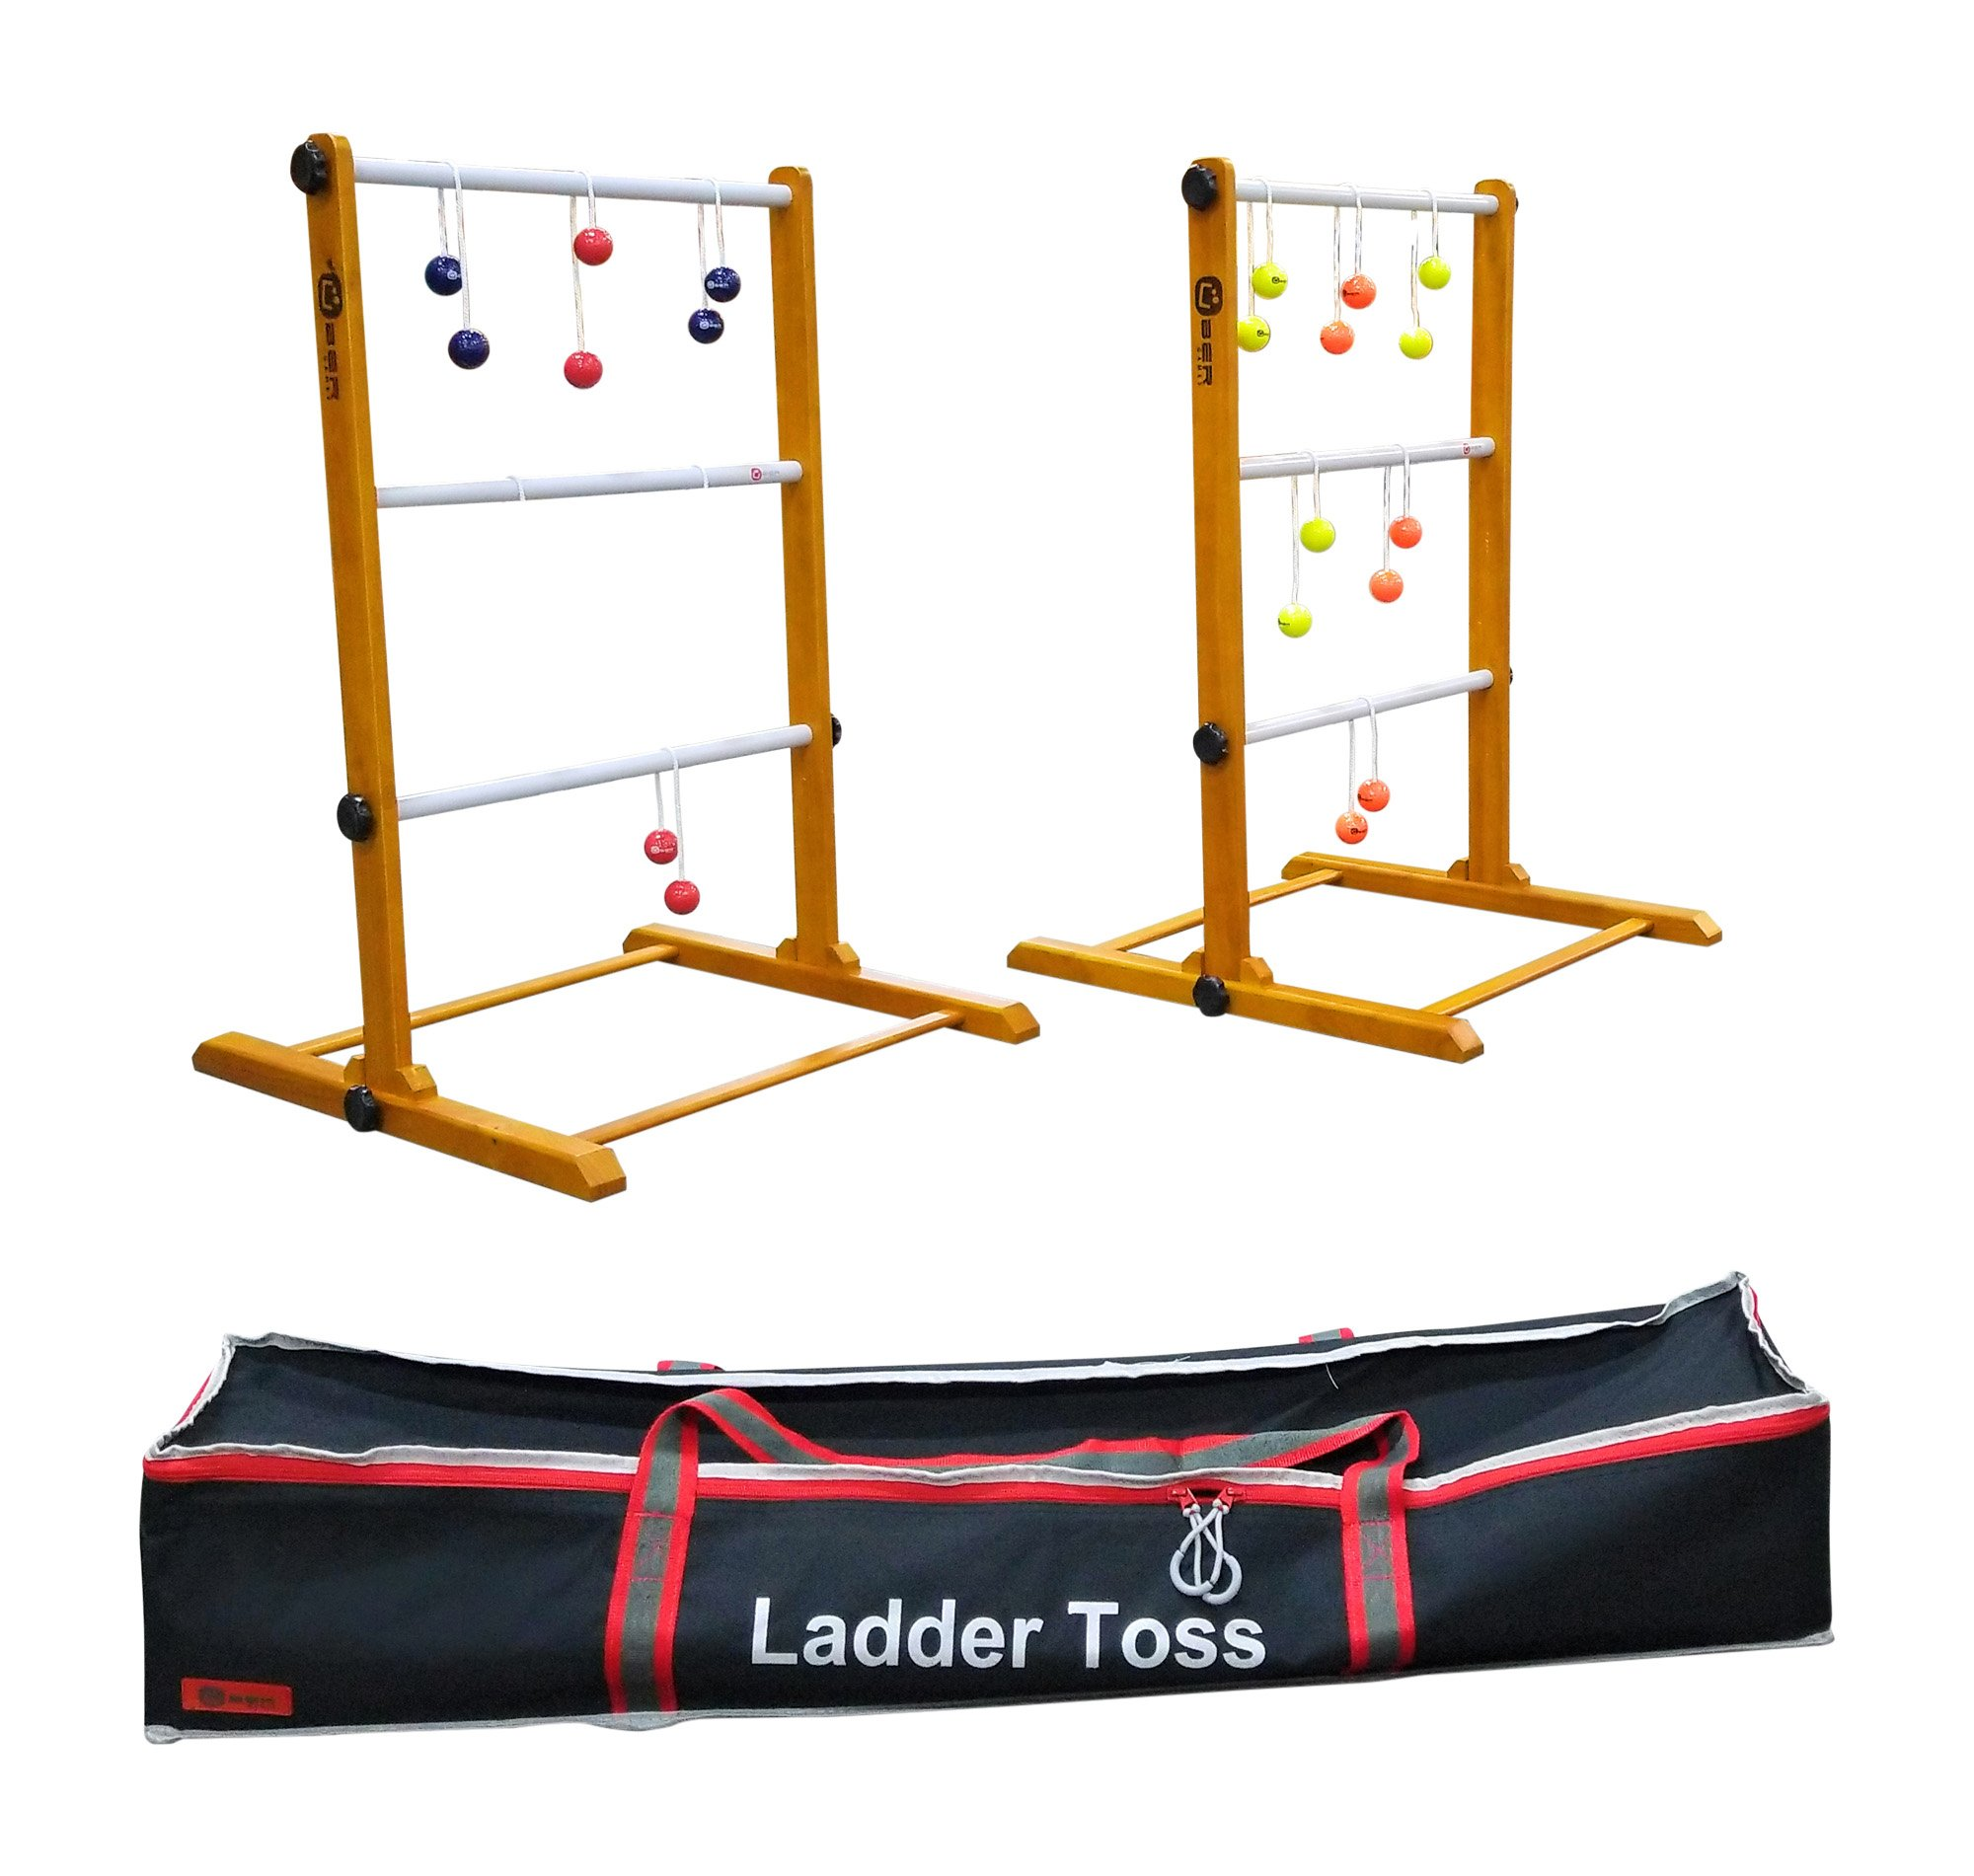 Uber Games Ladder Toss - Double Game - Red, Navy Blue, Orange, and Yellow Bolas